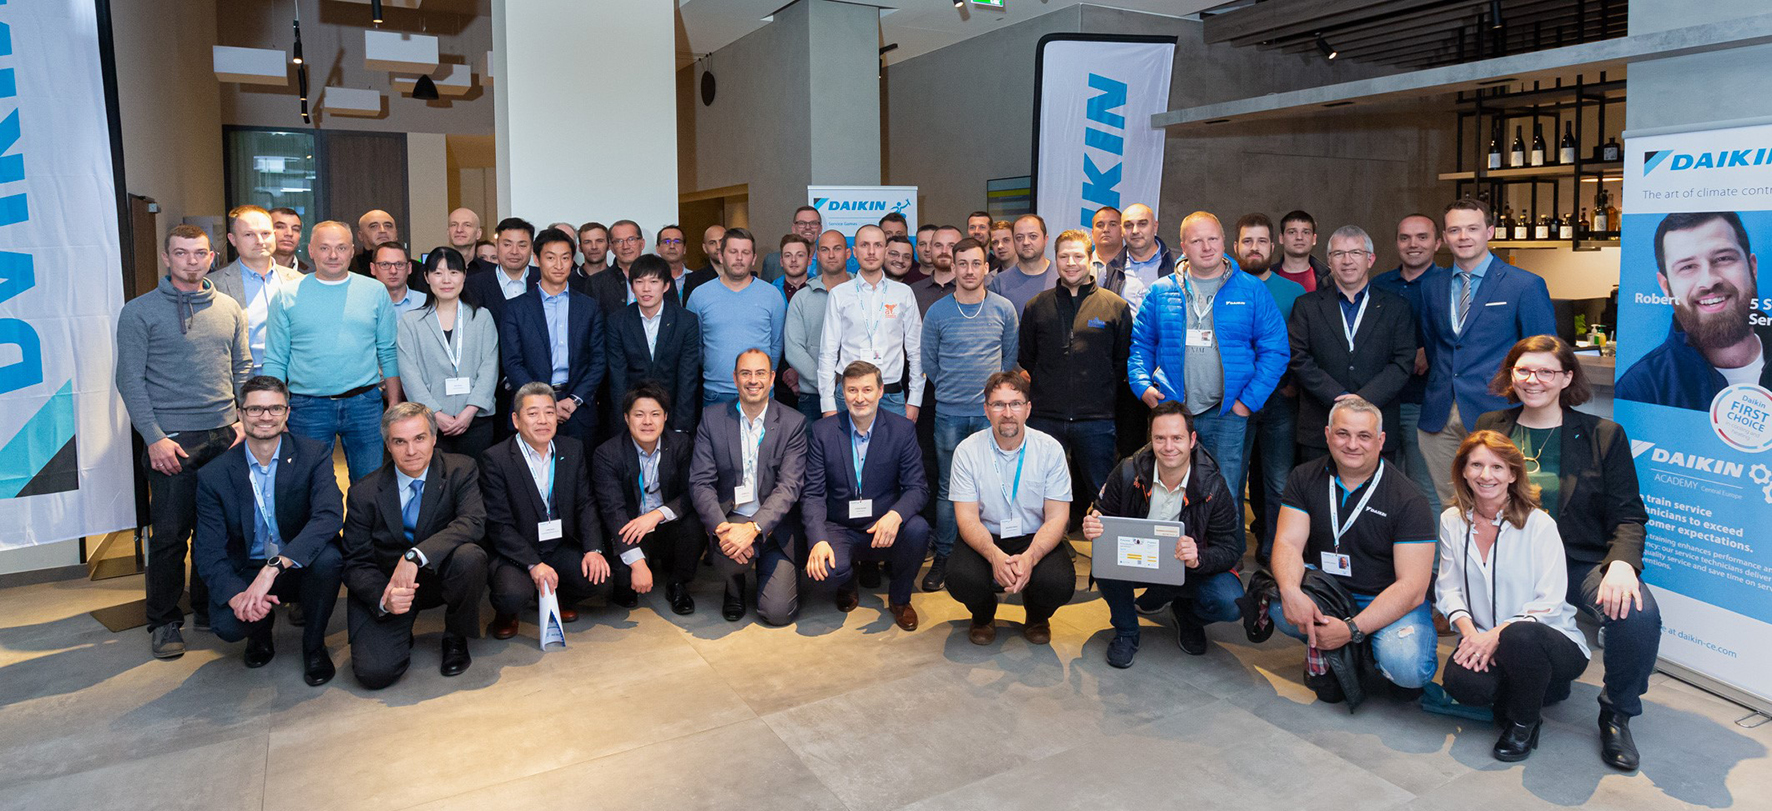 Daikin Service Games Central Europe - group picture